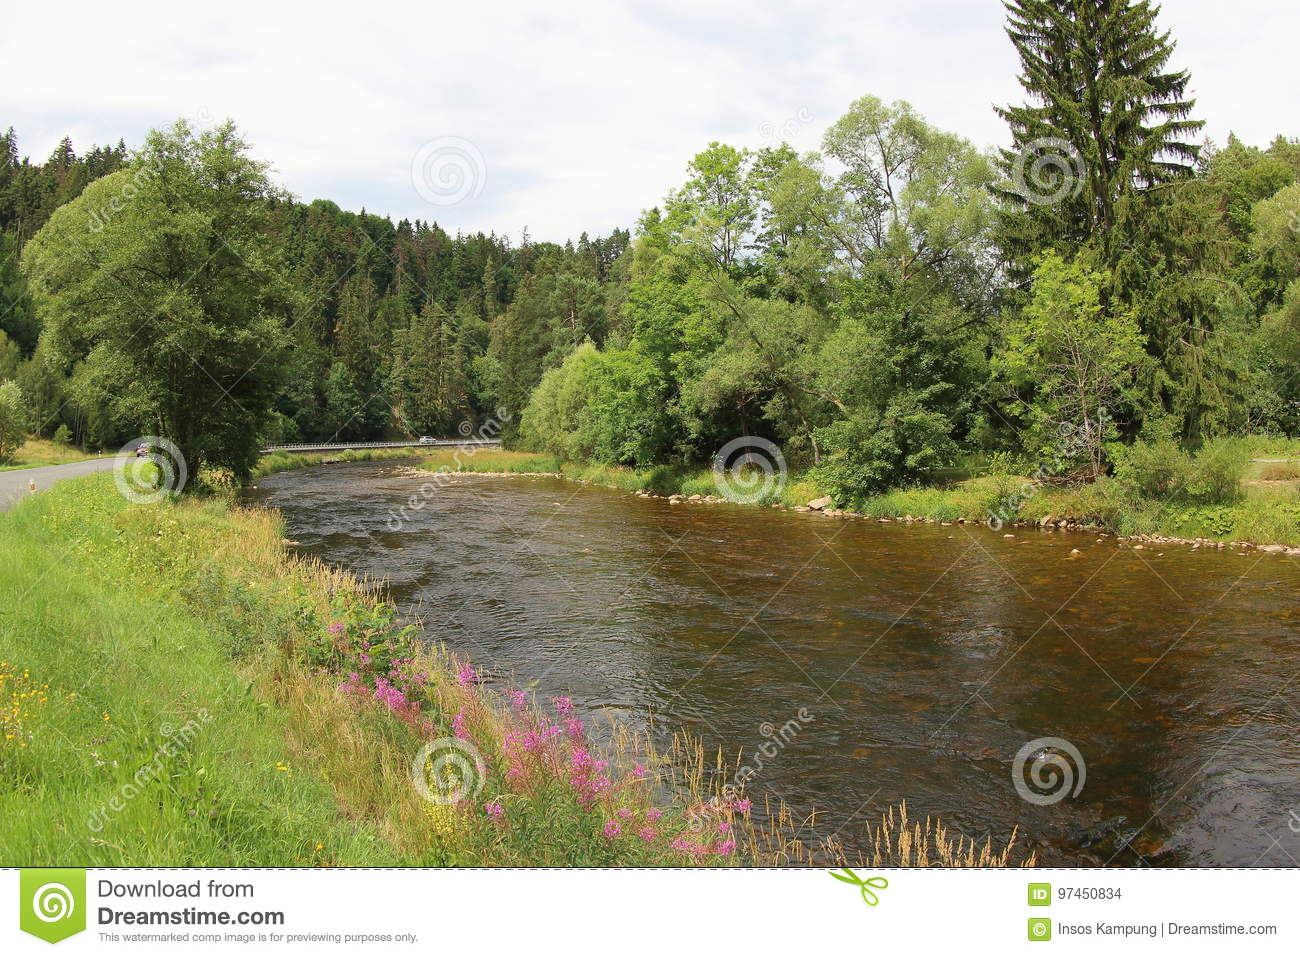 Otava River, Czech Republic